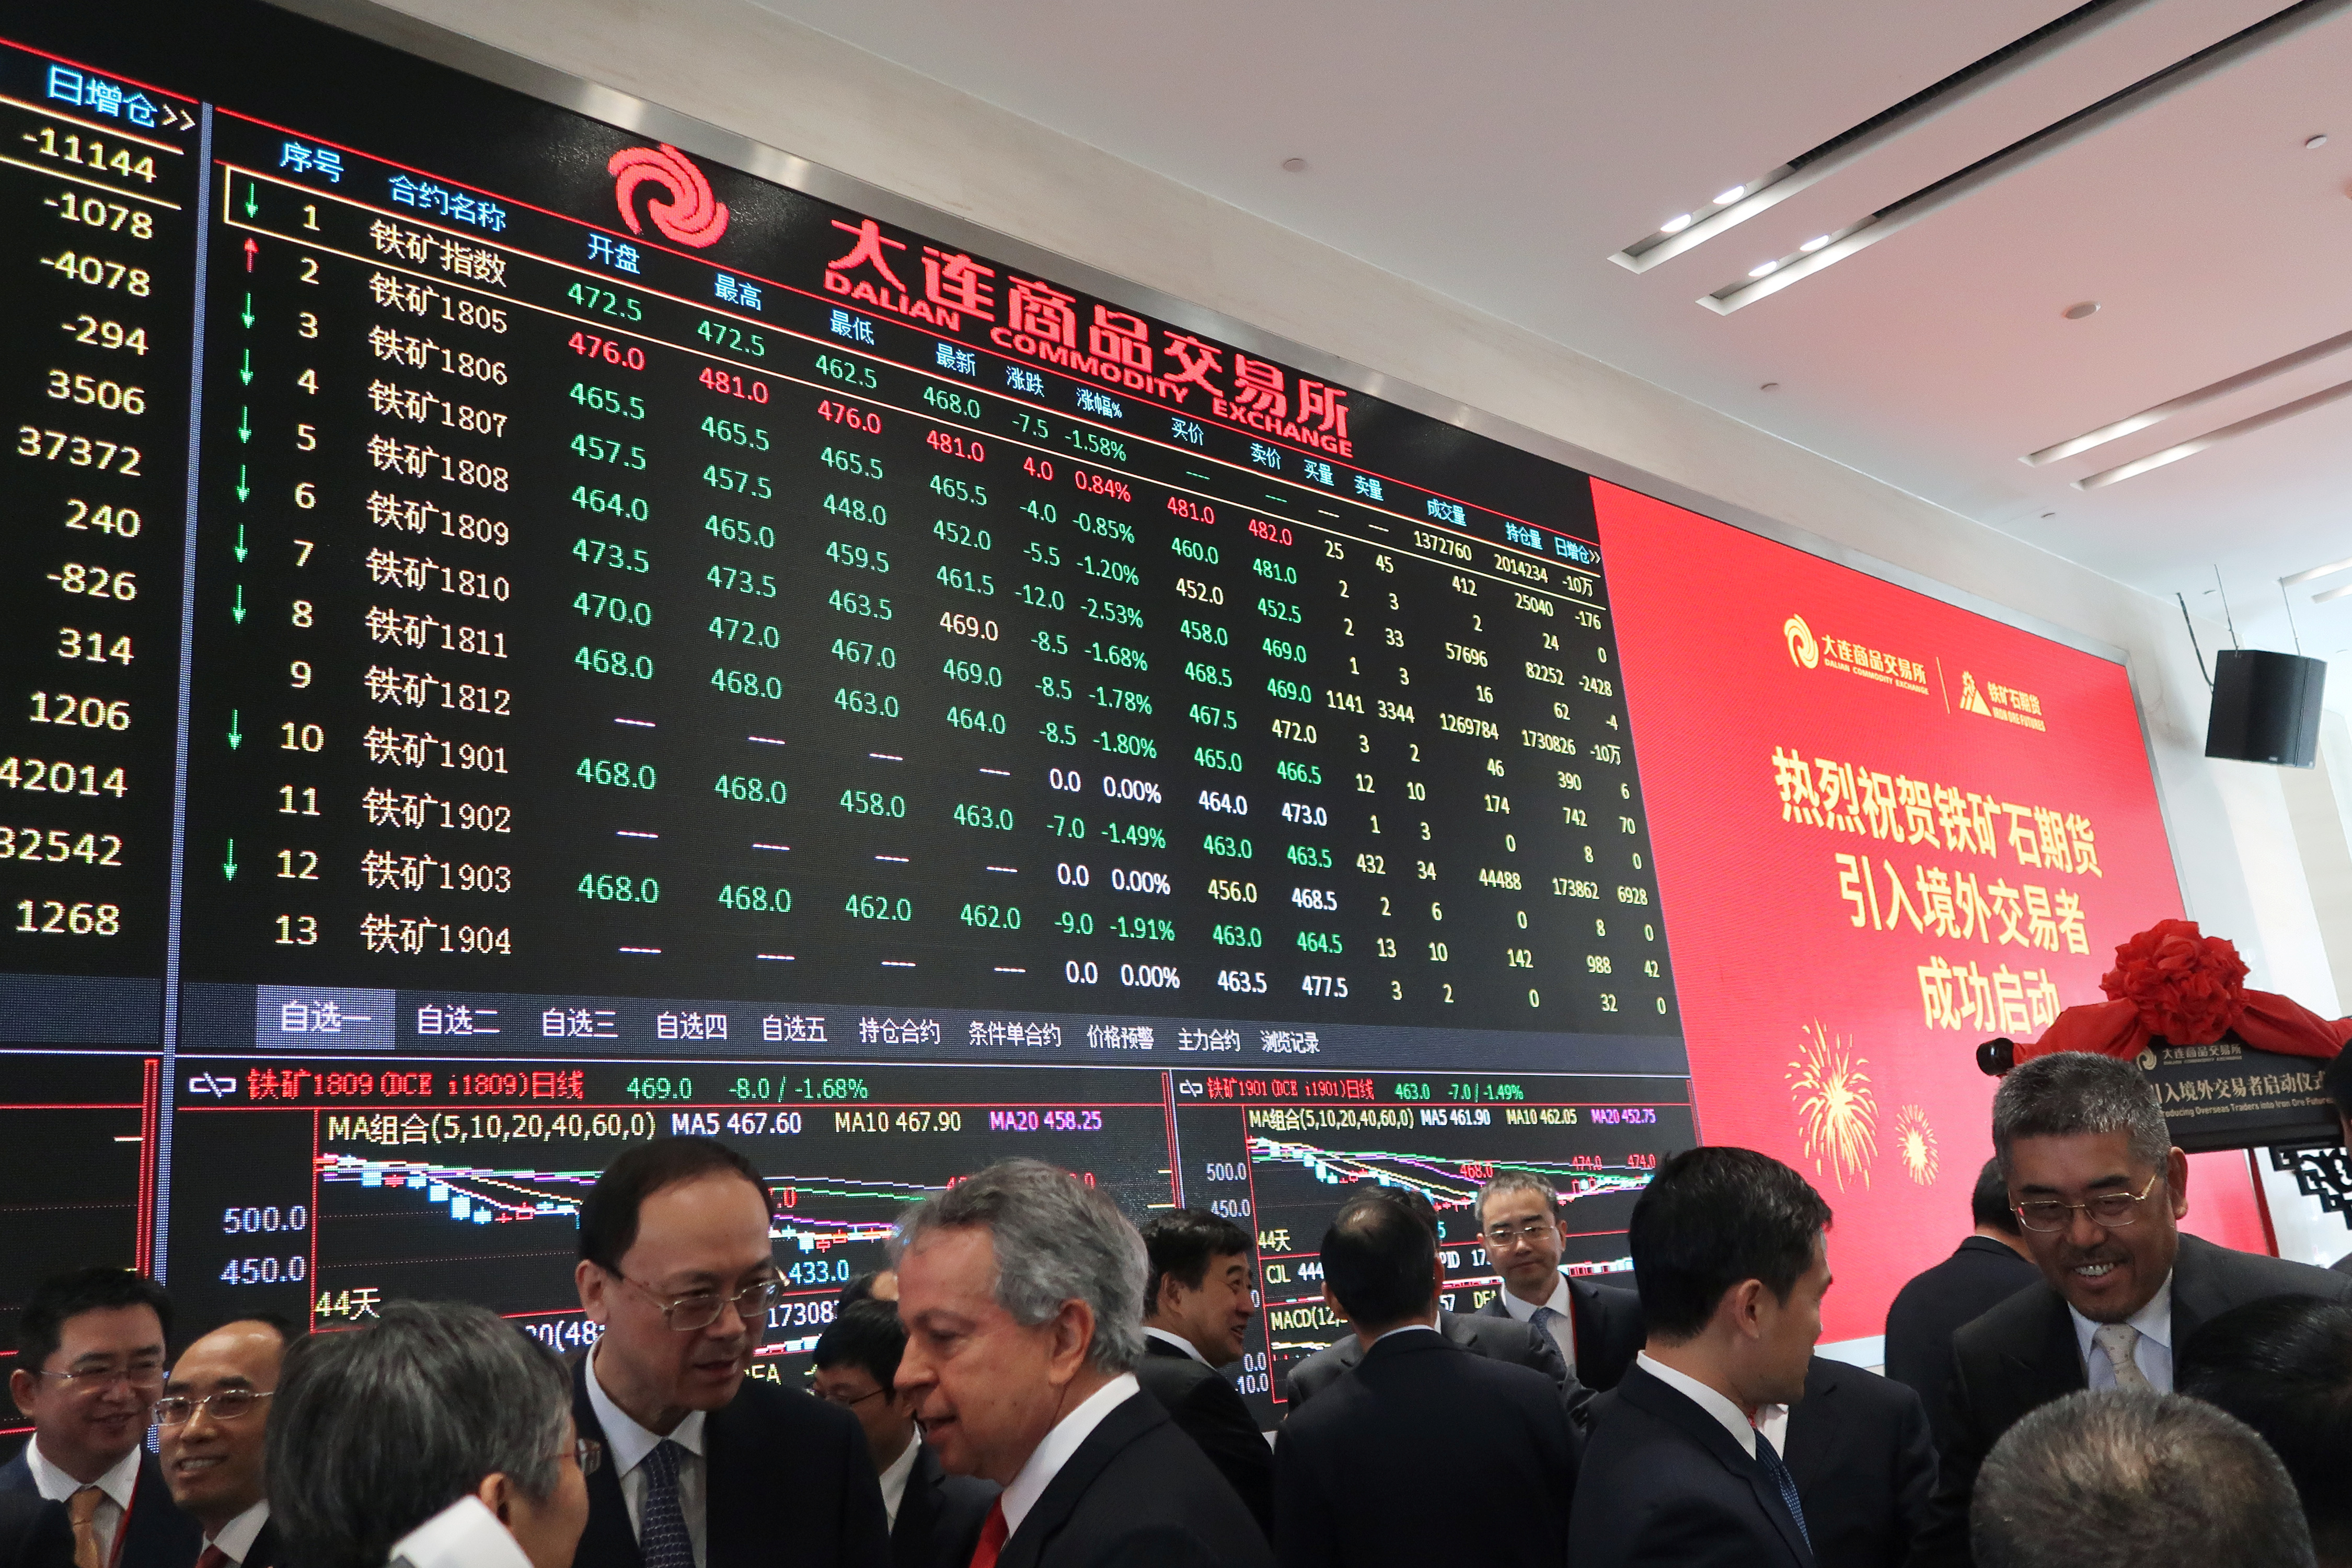 People attend a ceremony marking the opening of iron ore futures to foreign investors, at Dalian Commodity Exchange in Dalian, Liaoning province, China May 4, 2018. REUTERS/Muyu Xu - RC1FC60EC240